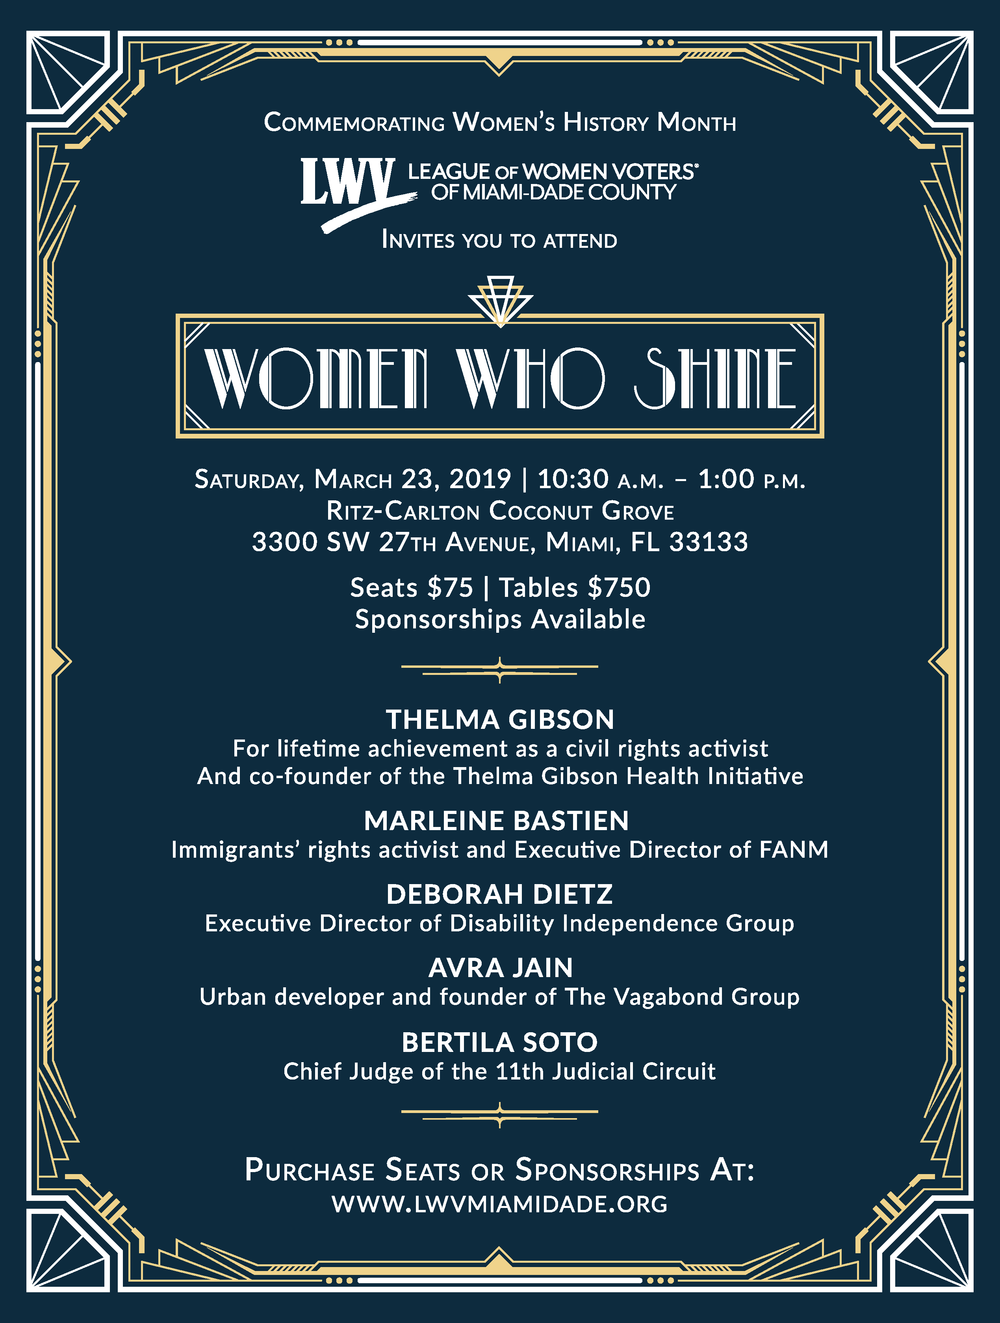 Women Who Shine 2019 Invitation Final.png